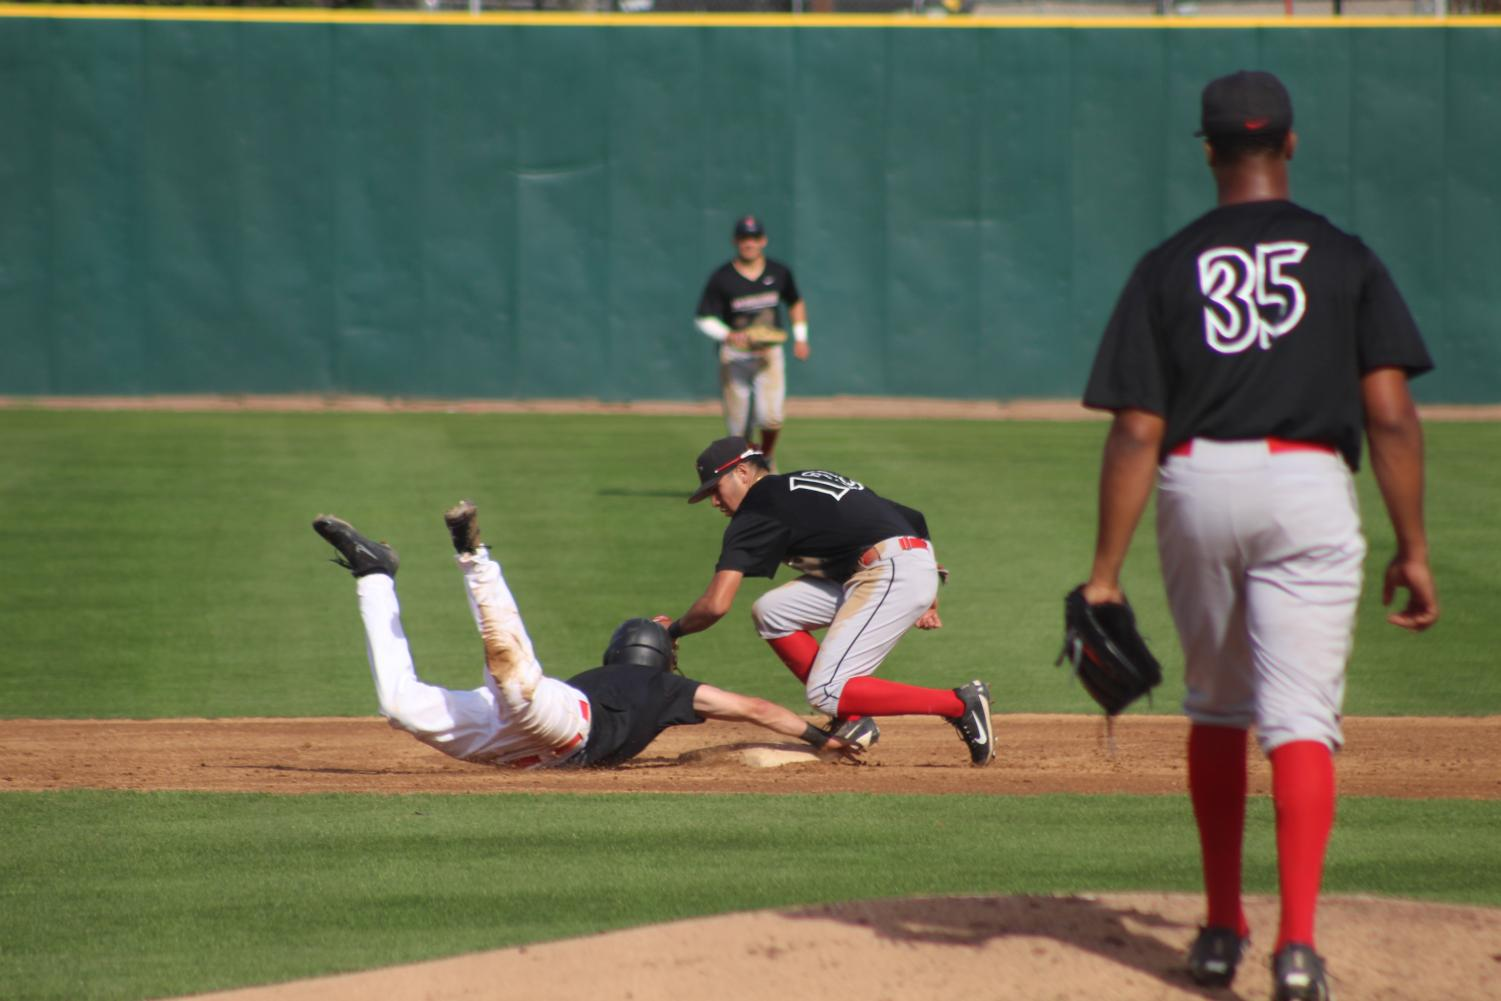 Freshman infielder David Alamillo tags out a member of the SDSU alumni while freshman right hander Aaron Eden looks on. The Aztecs defeated the alumni by a score of 8-2 on Jan. 26 at Tony Gwynn Stadium.